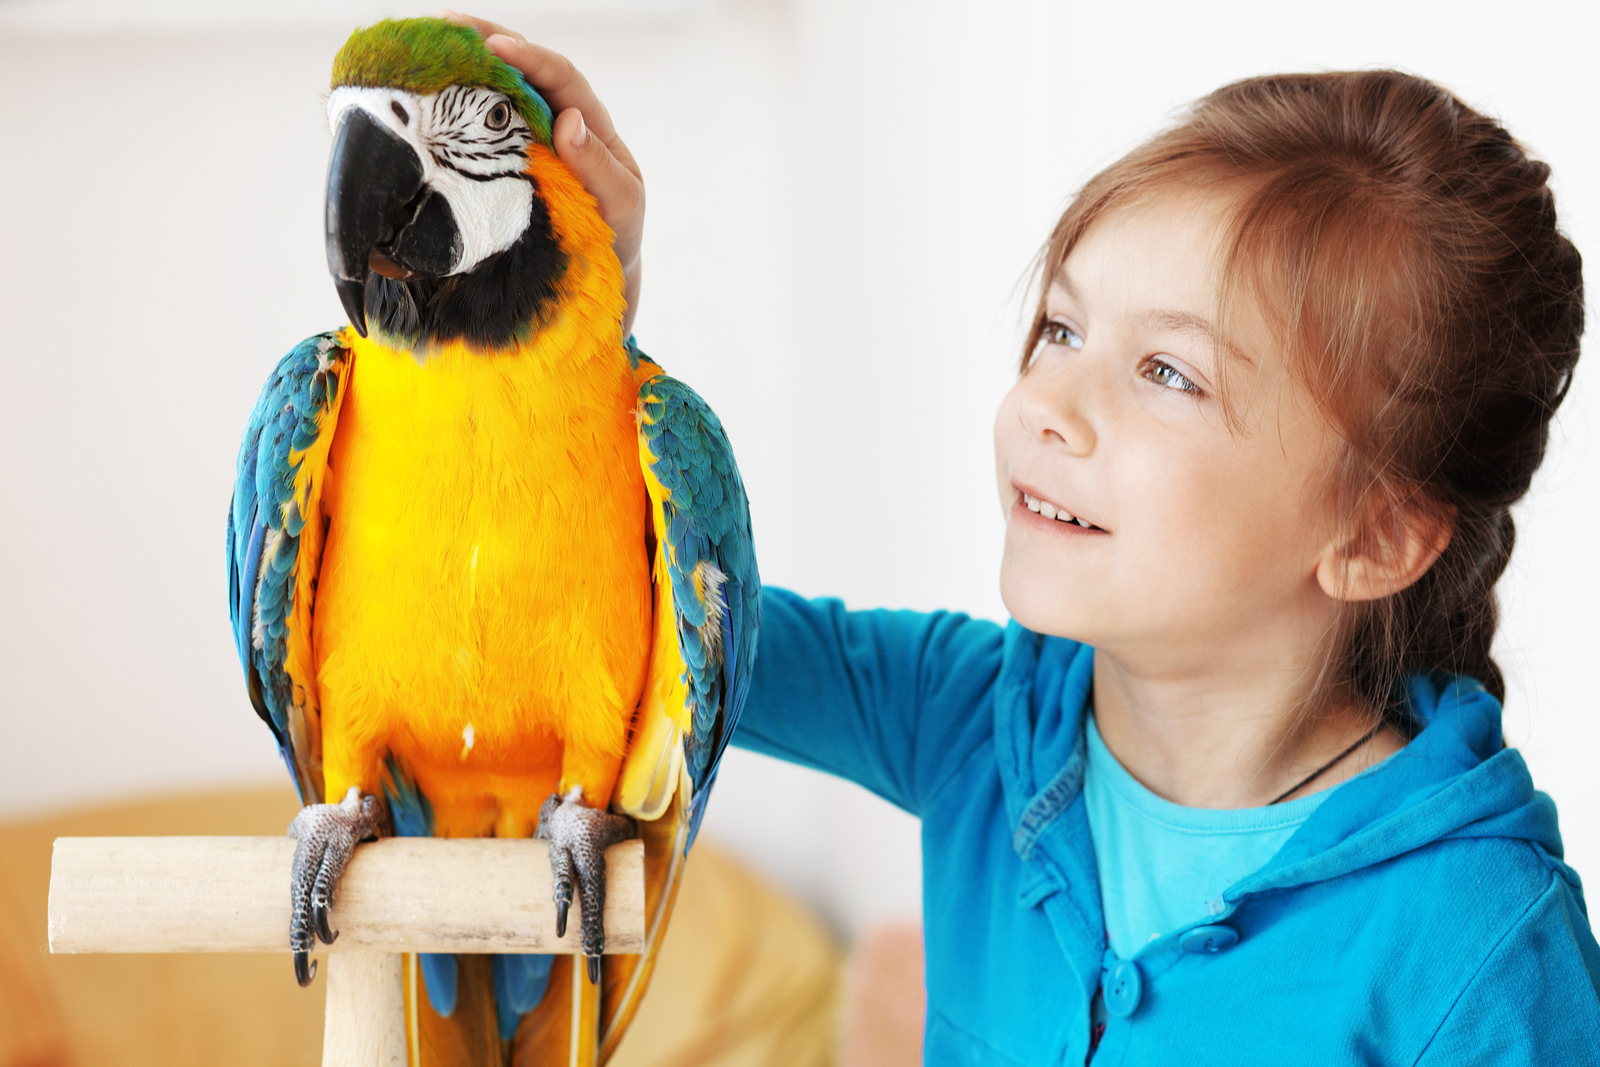 Kid With Exotic Parrot